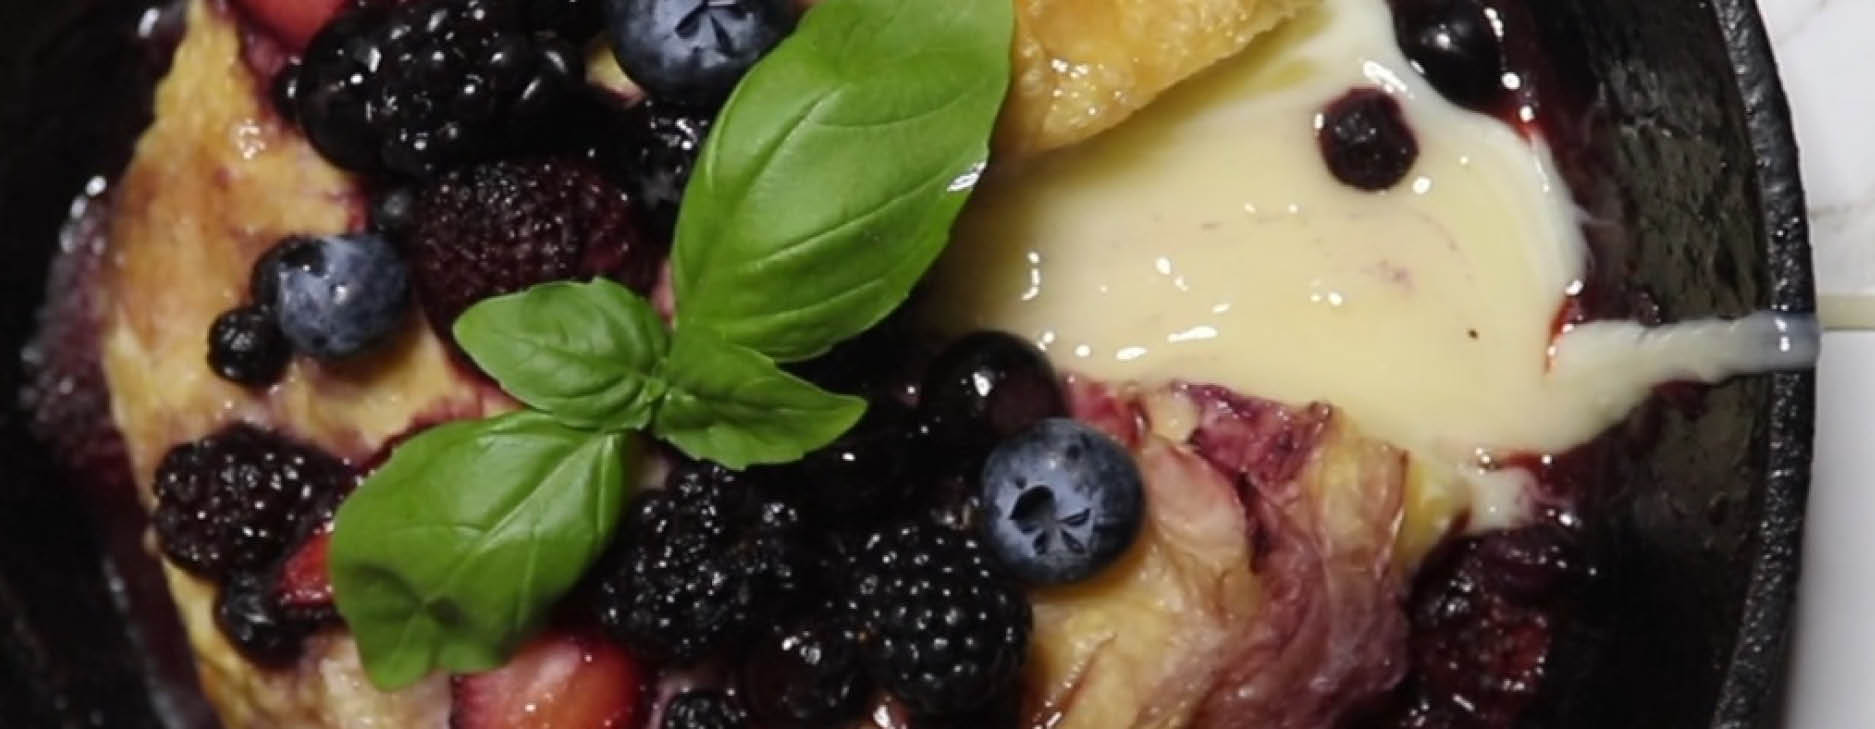 Berry Baked Brie with Bianca Sweet White Vinegar